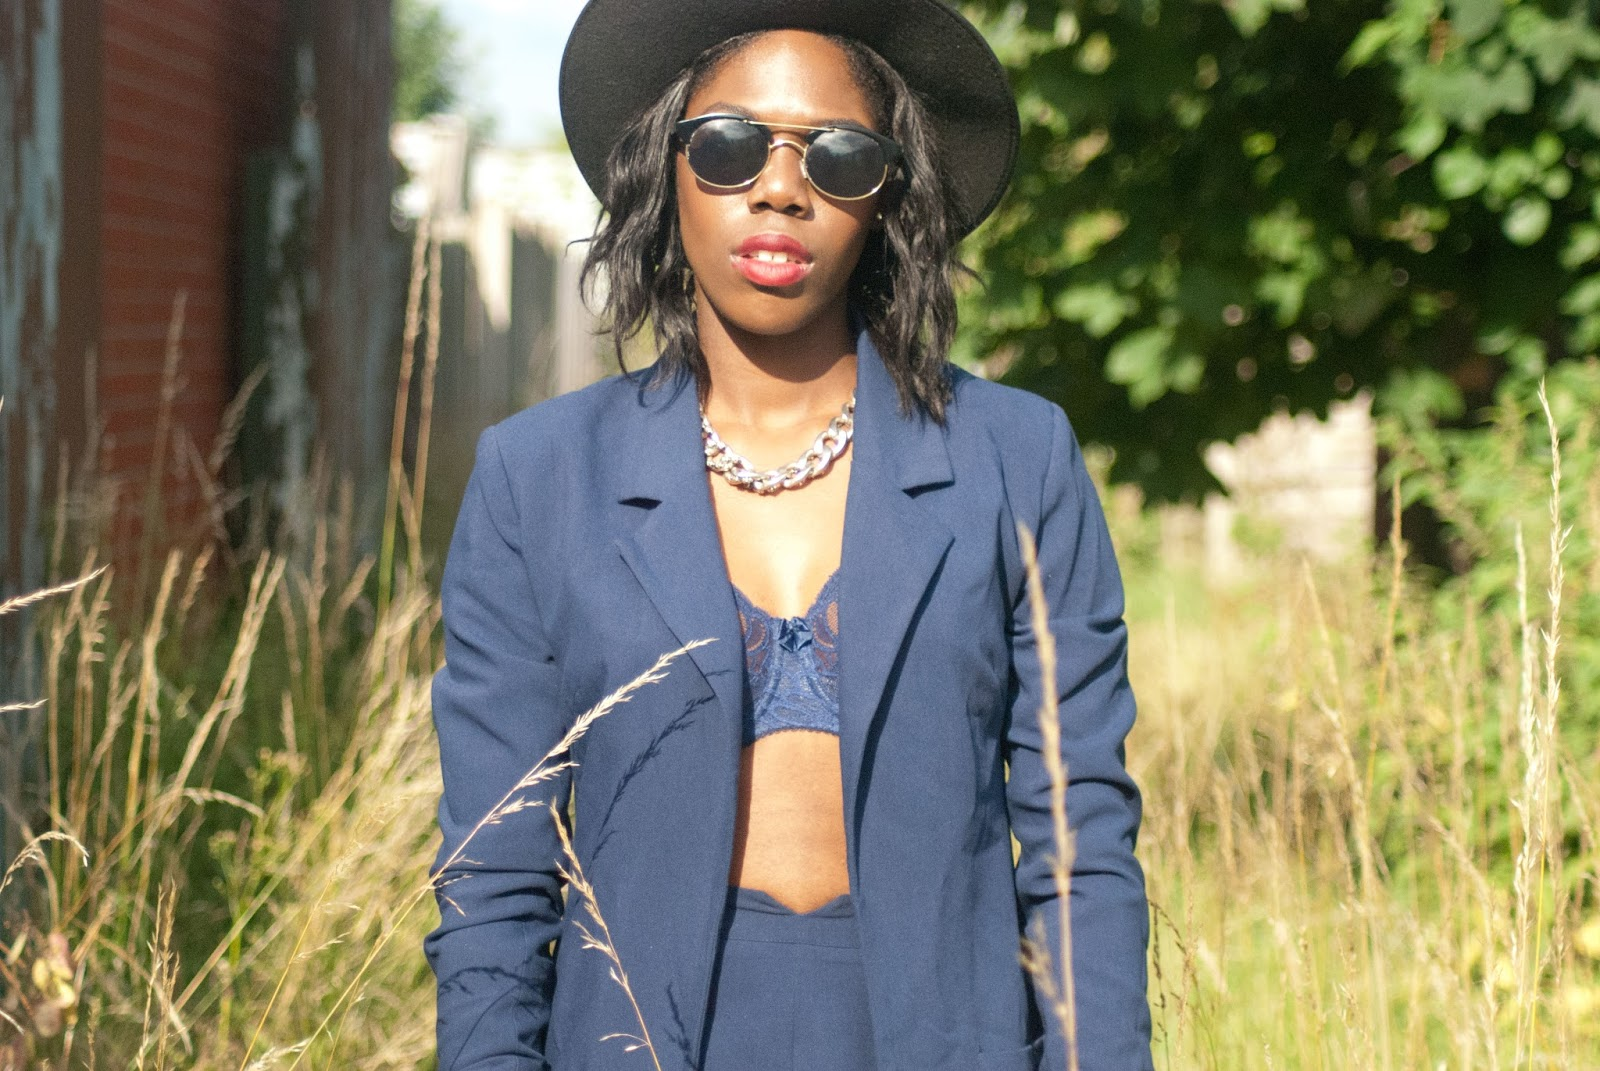 Debenhams Fantasie Bra Outfit_Review_Giveaway, Missguided navy co-ord, missguided navy blazer, missguided navy shorts, Boohoo Fedora, Asos Sunglasses, Debenhams Lingeriea